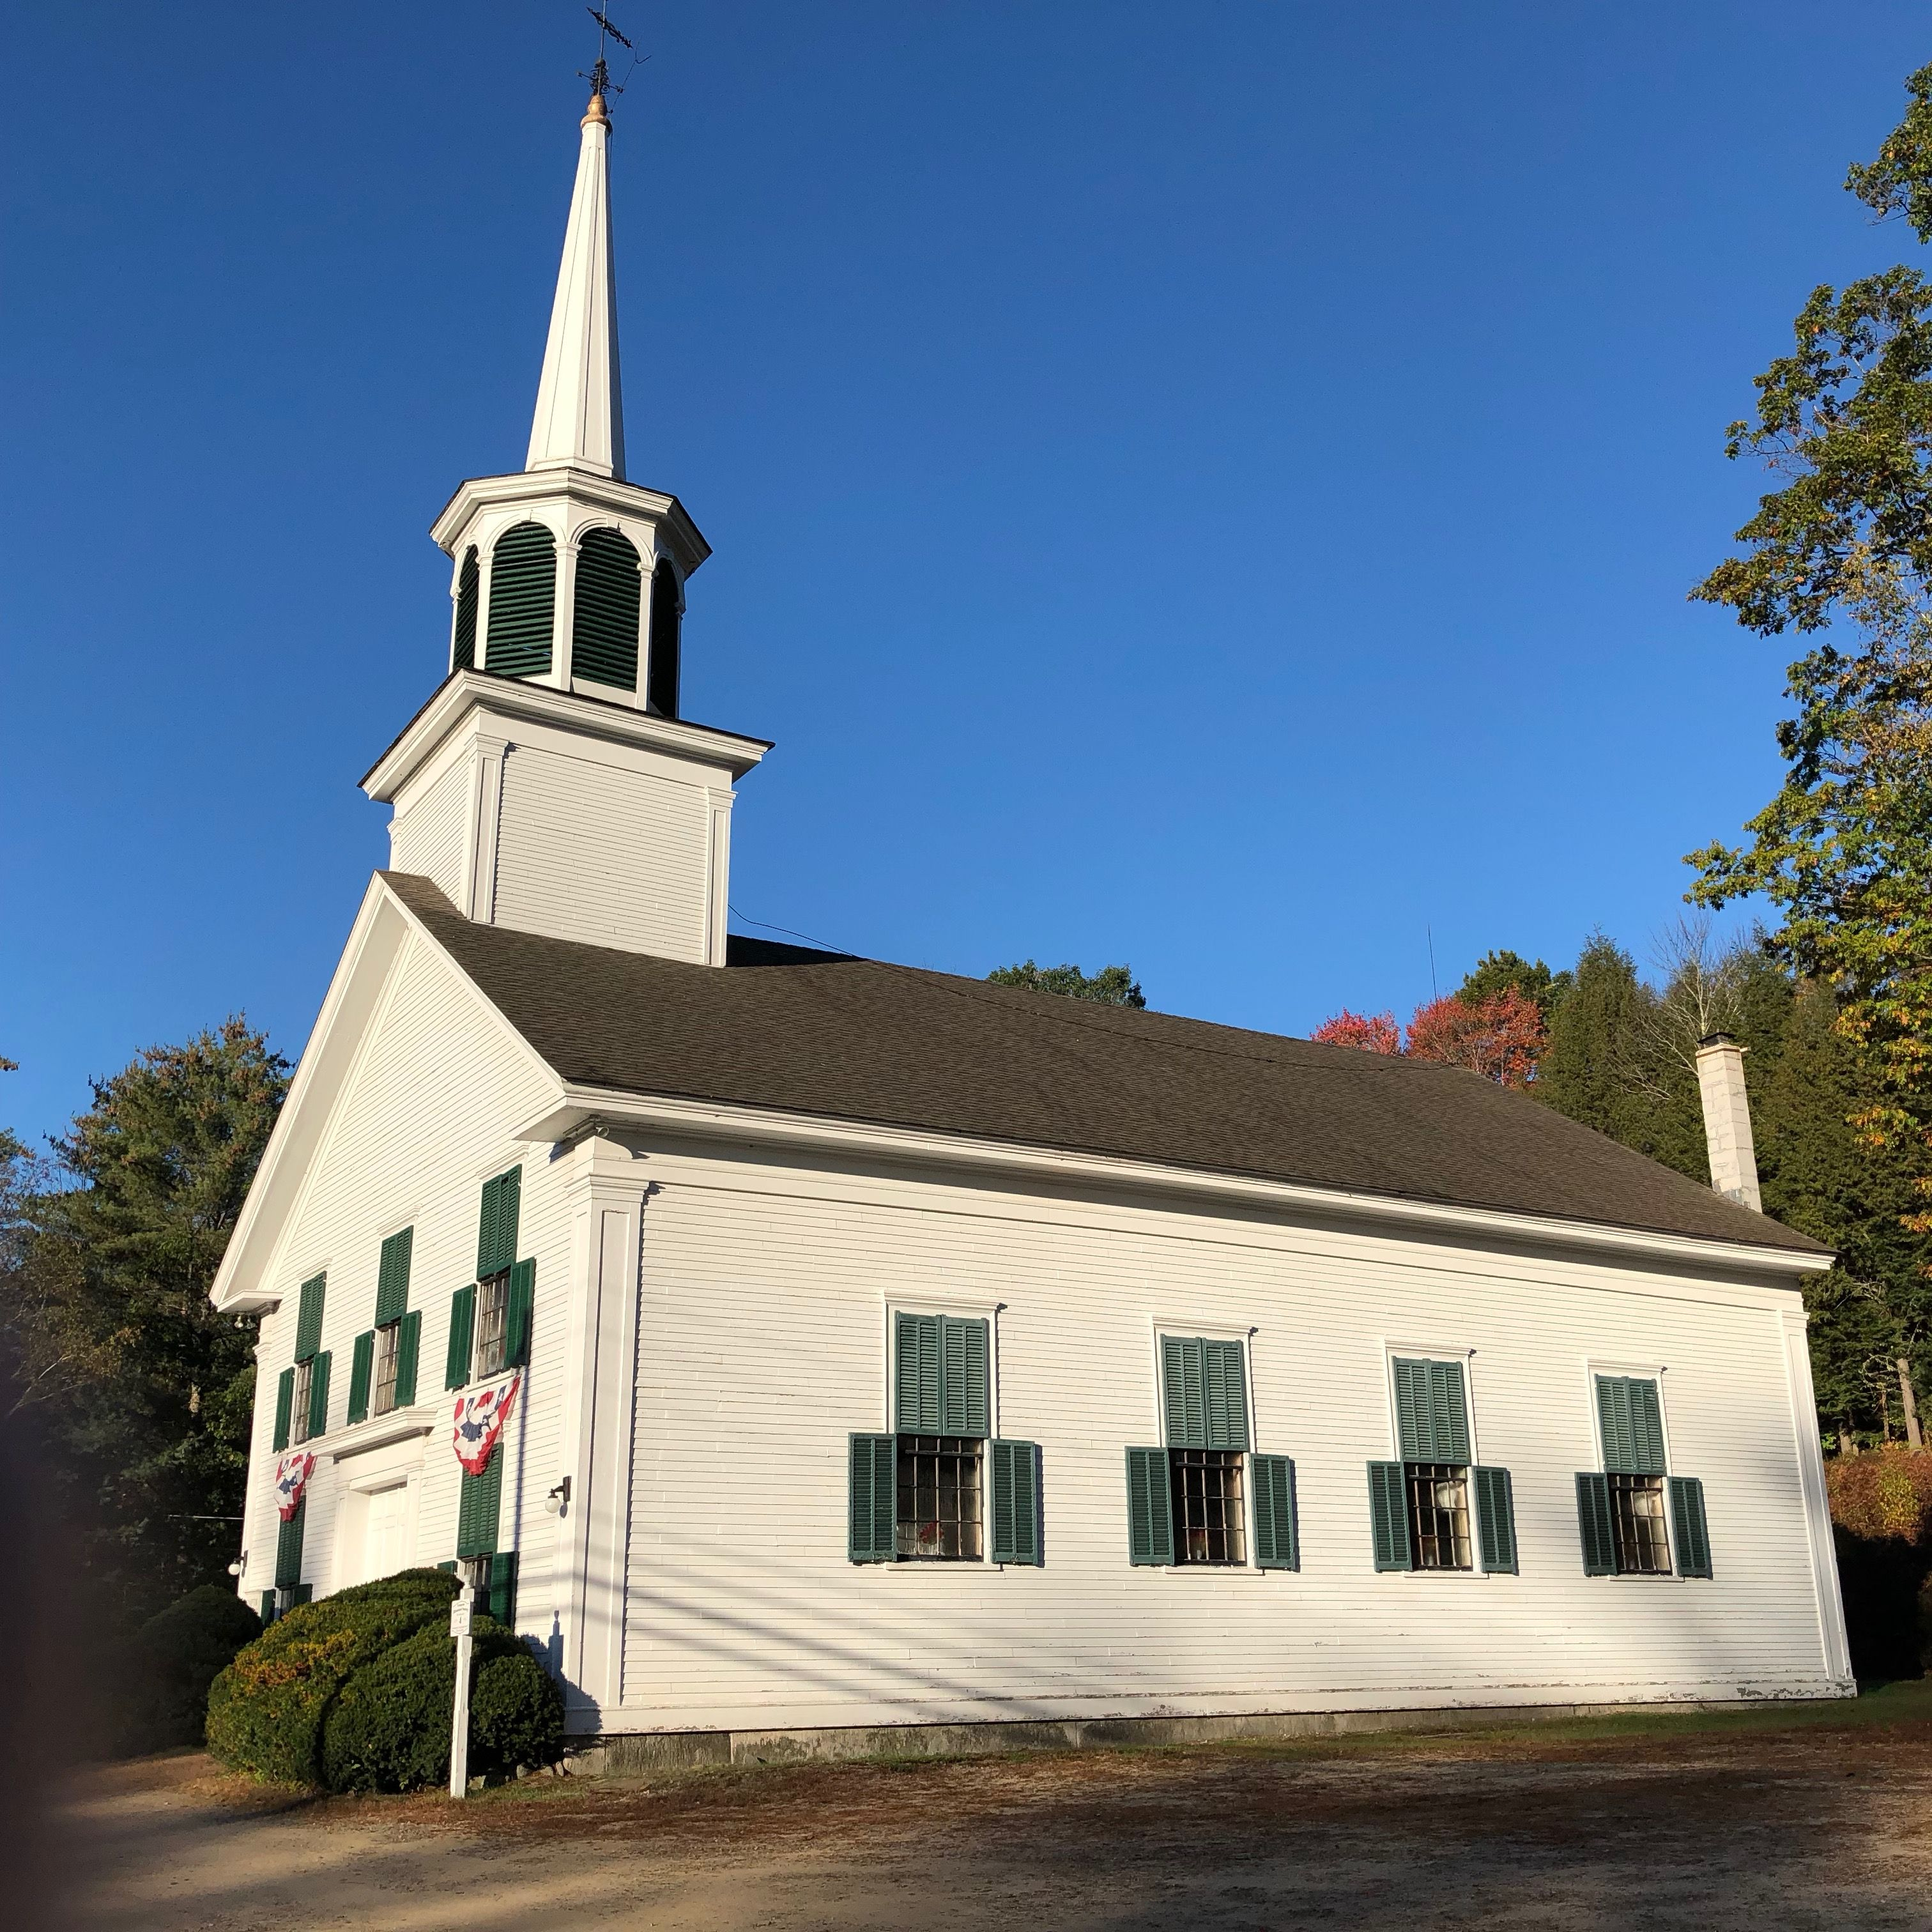 Congregational Church. Campton Lower Village, New Hampshire. Paul Chandler  October 2017.